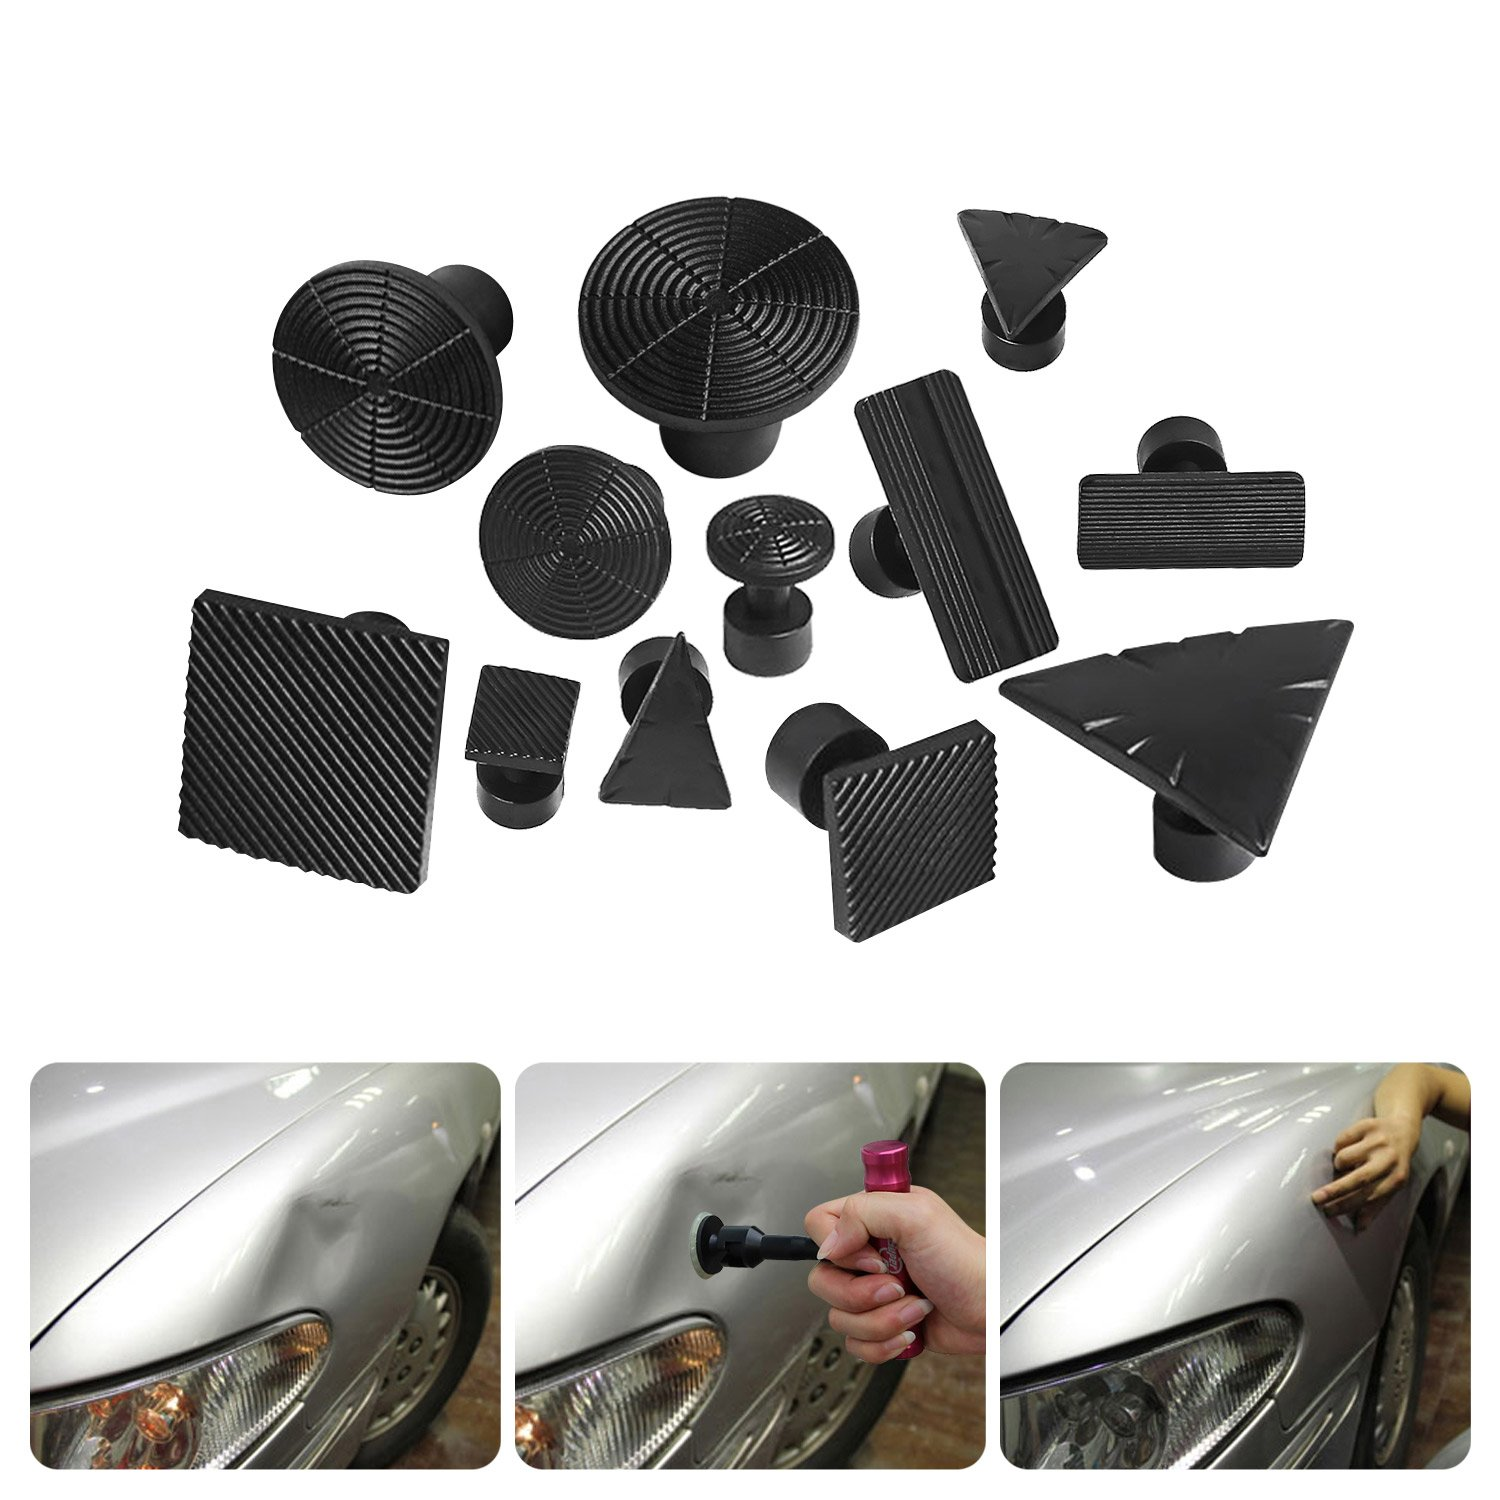 Super PDR 32Pcs New PDR Auto Car Body Dent Repair Removal Tools Dent Puller Suction Cup Dent Repair Kit by Super PDR (Image #7)